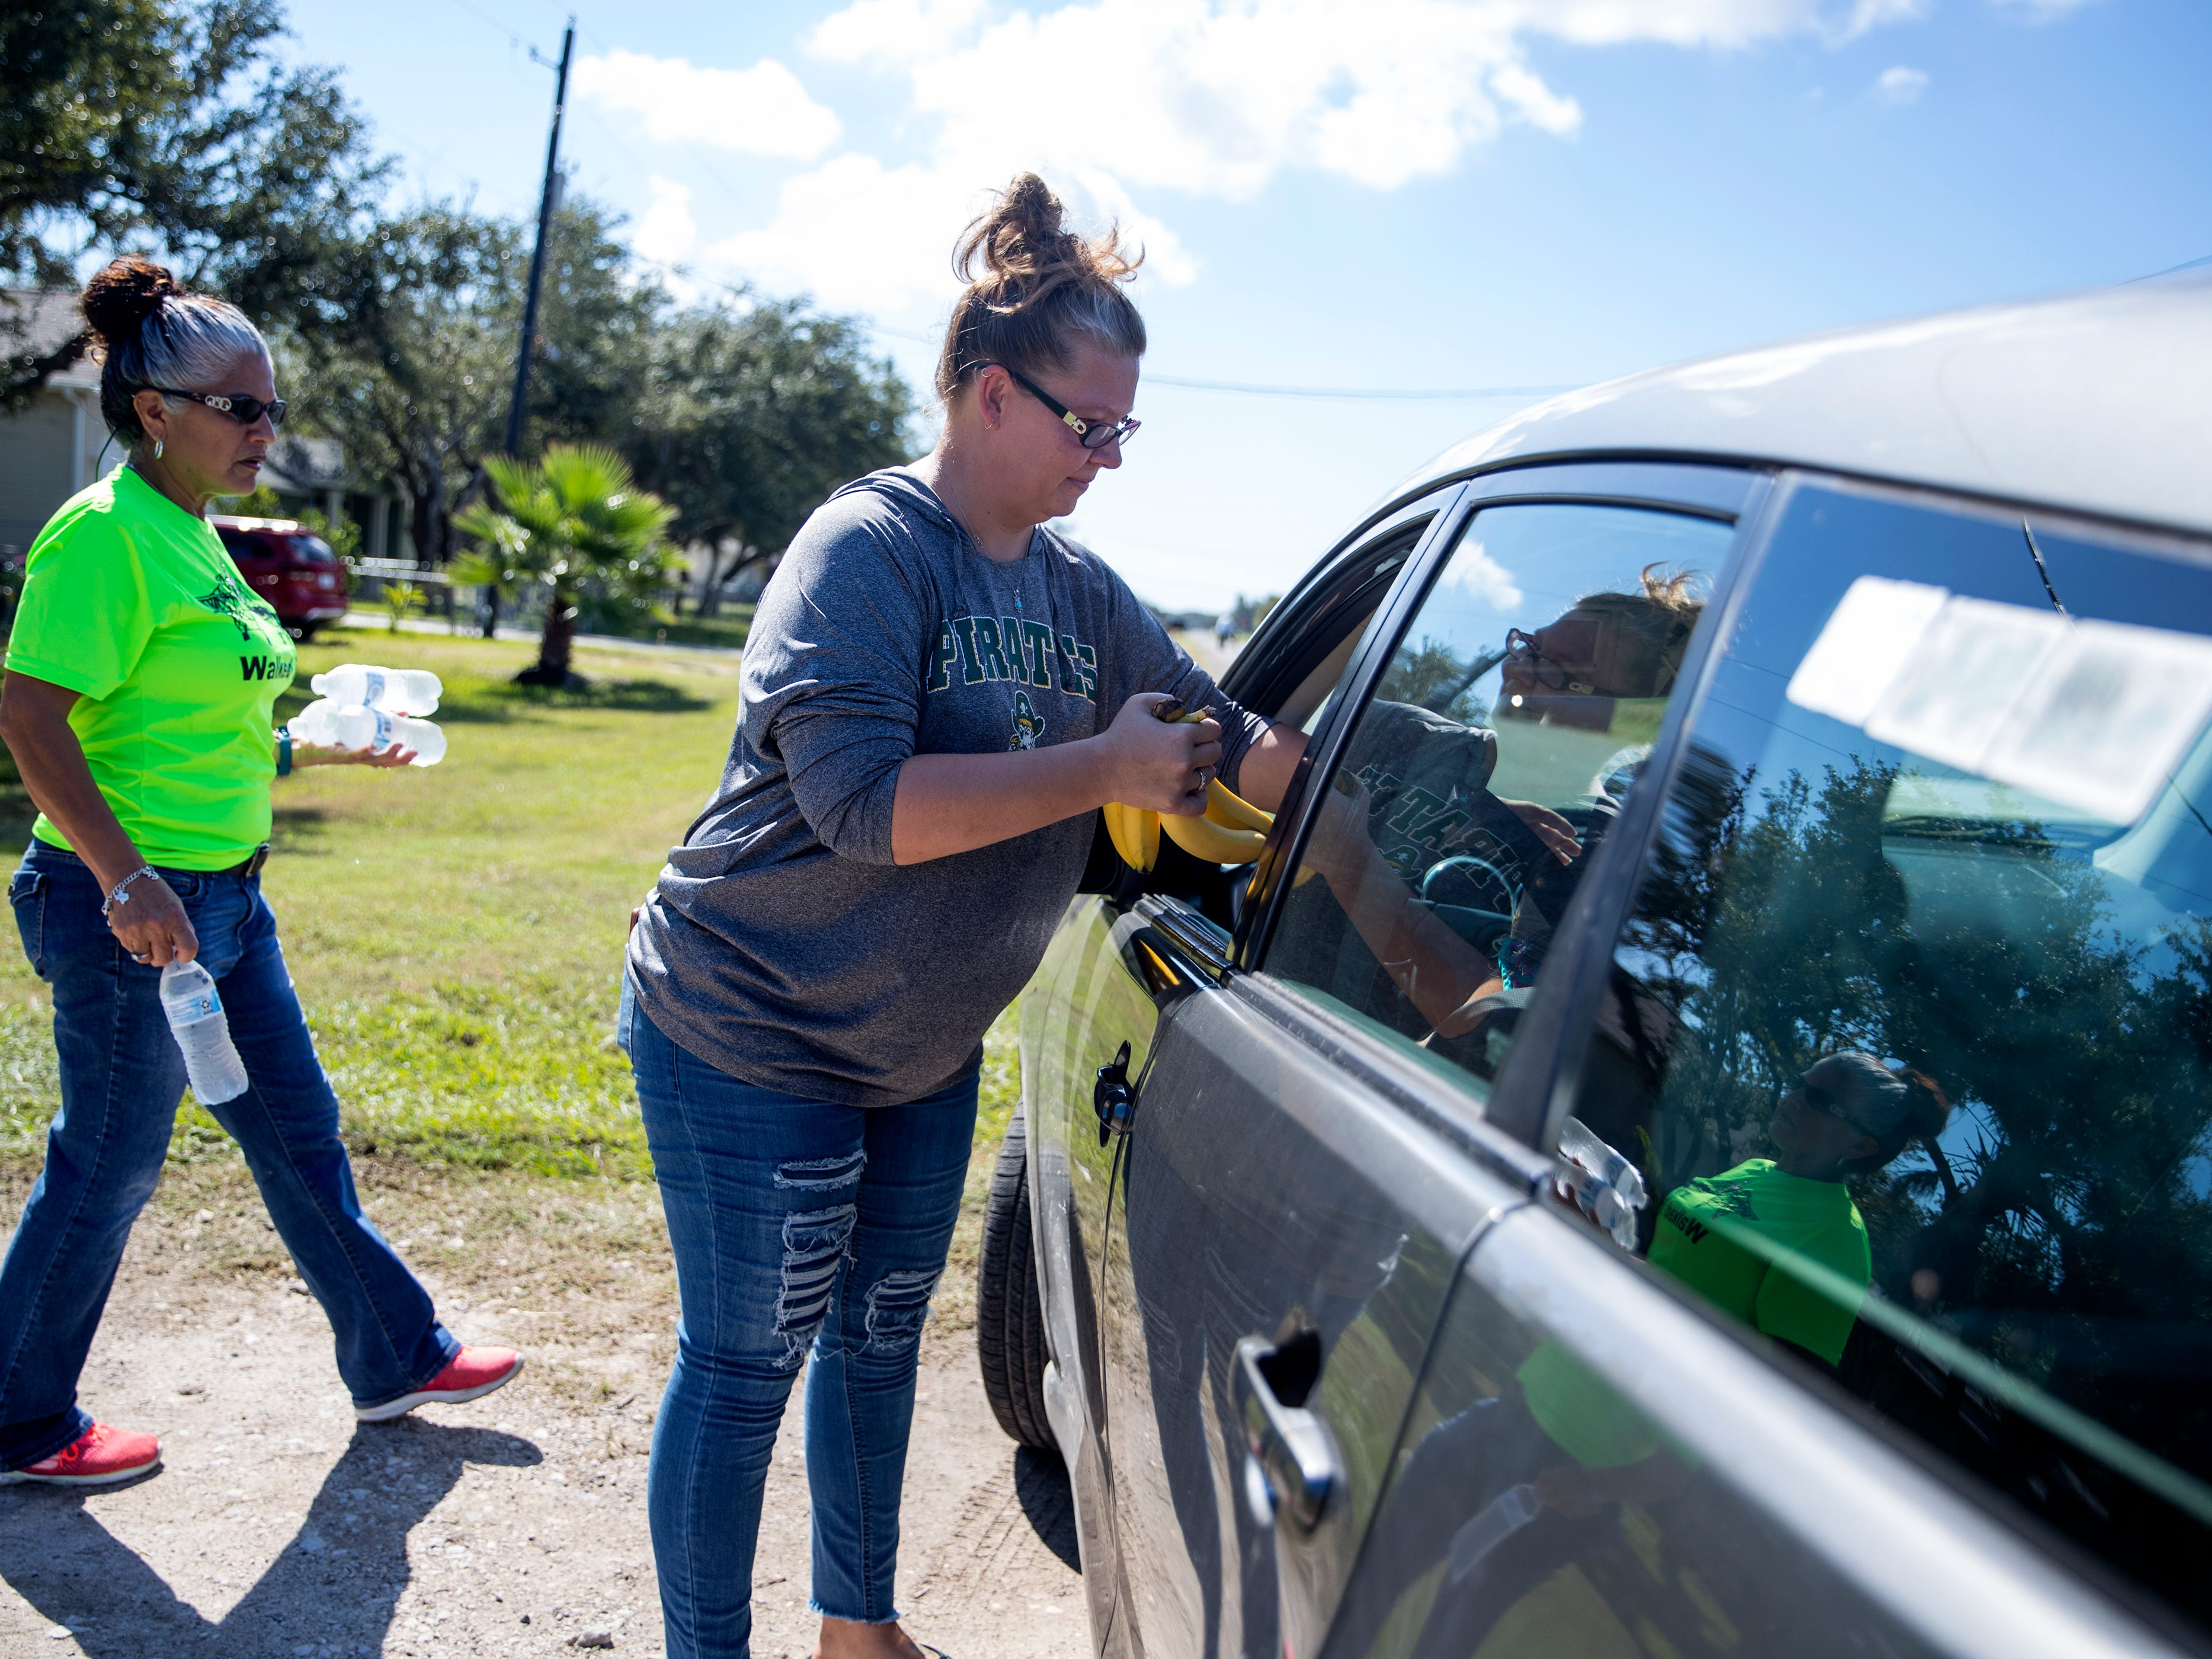 Angie Mendiola (left) and DeeDee Kilough take sack lunches to a woman at Kilough's home in Rockport on on Monday, October 29, 2018. It is the second time Klough has given away lunches and said it was a way for her to give back to the community. She posts the information on Facebook and flags down people in passing vehicles to give the lunches away.